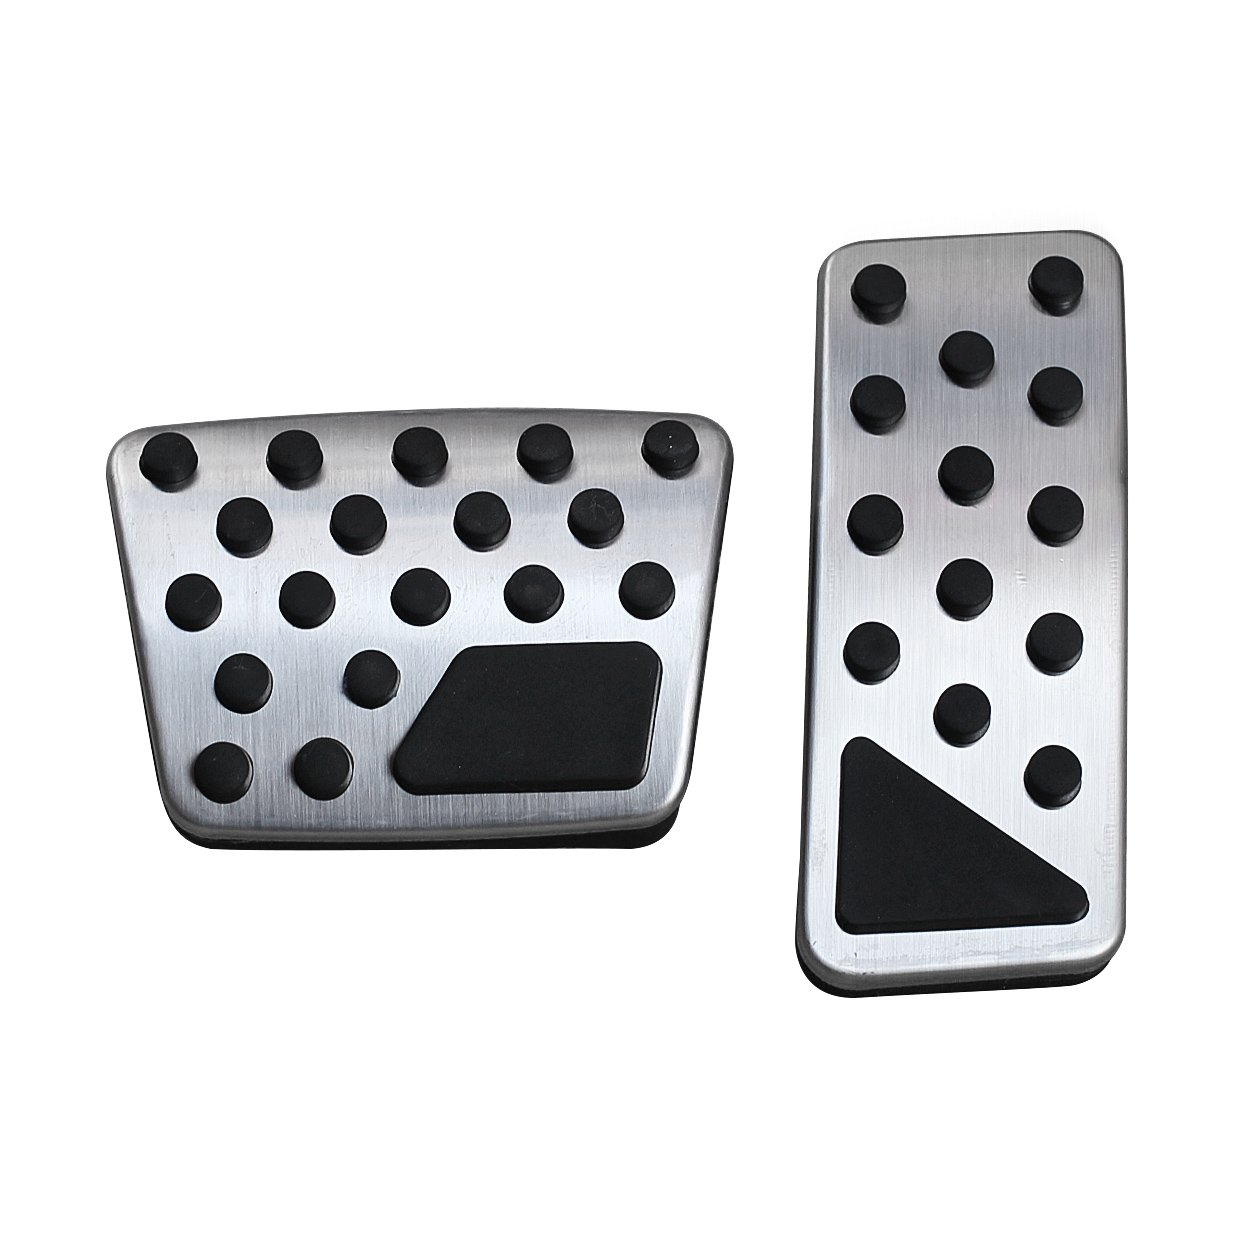 AutoBig Accelerator Brake Pedal Cover Jeep Cherokee KL 2014-2019 No Drill Stainless Steel Gas Pad Plate Cap